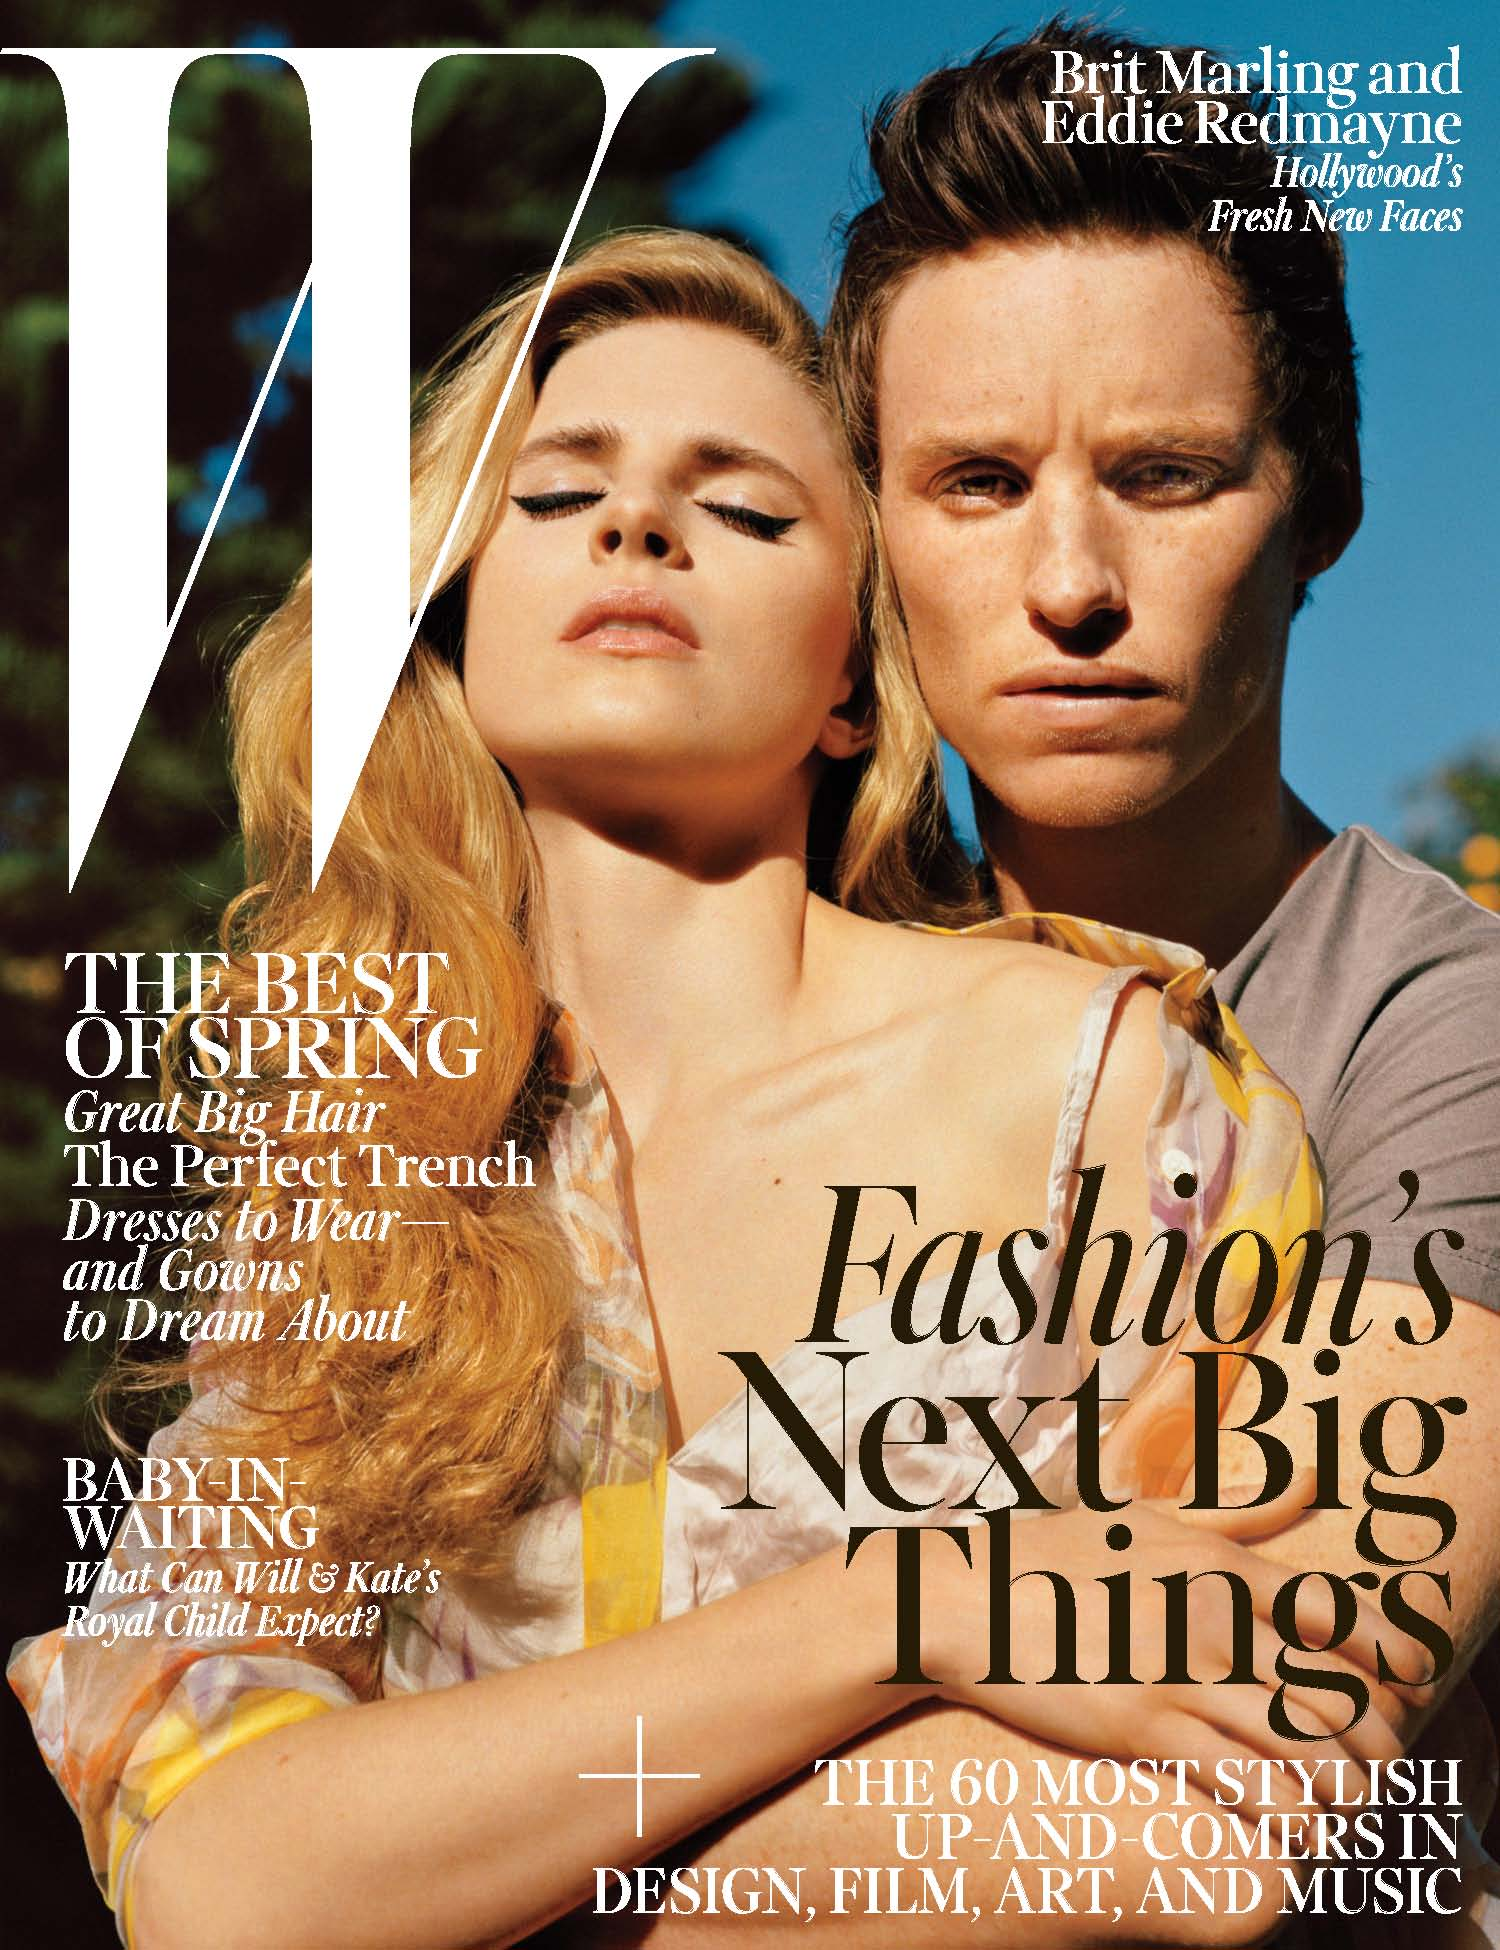 w magazine April 2013 cover.jpg